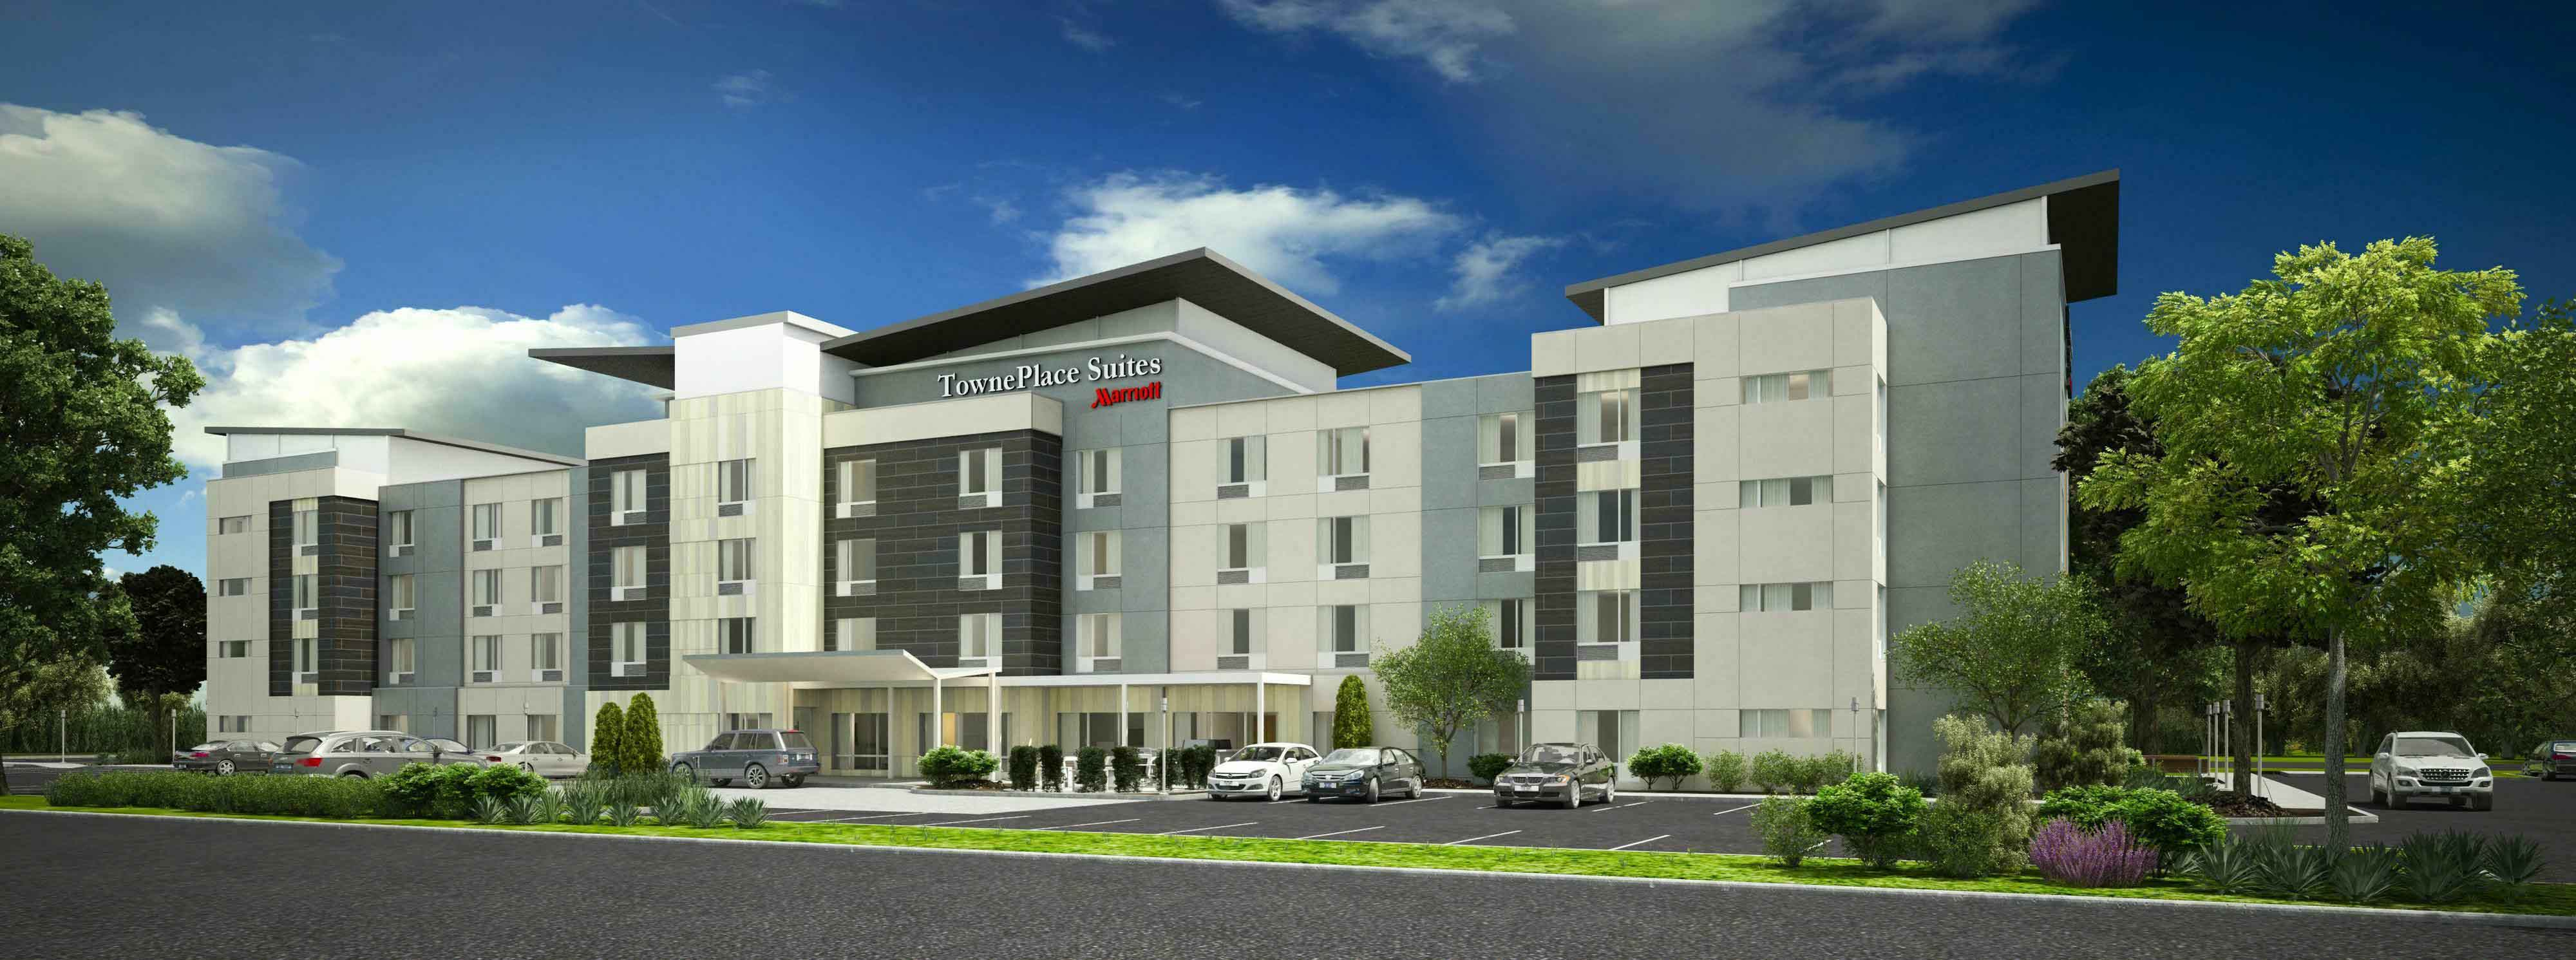 TownePlace Suites 2